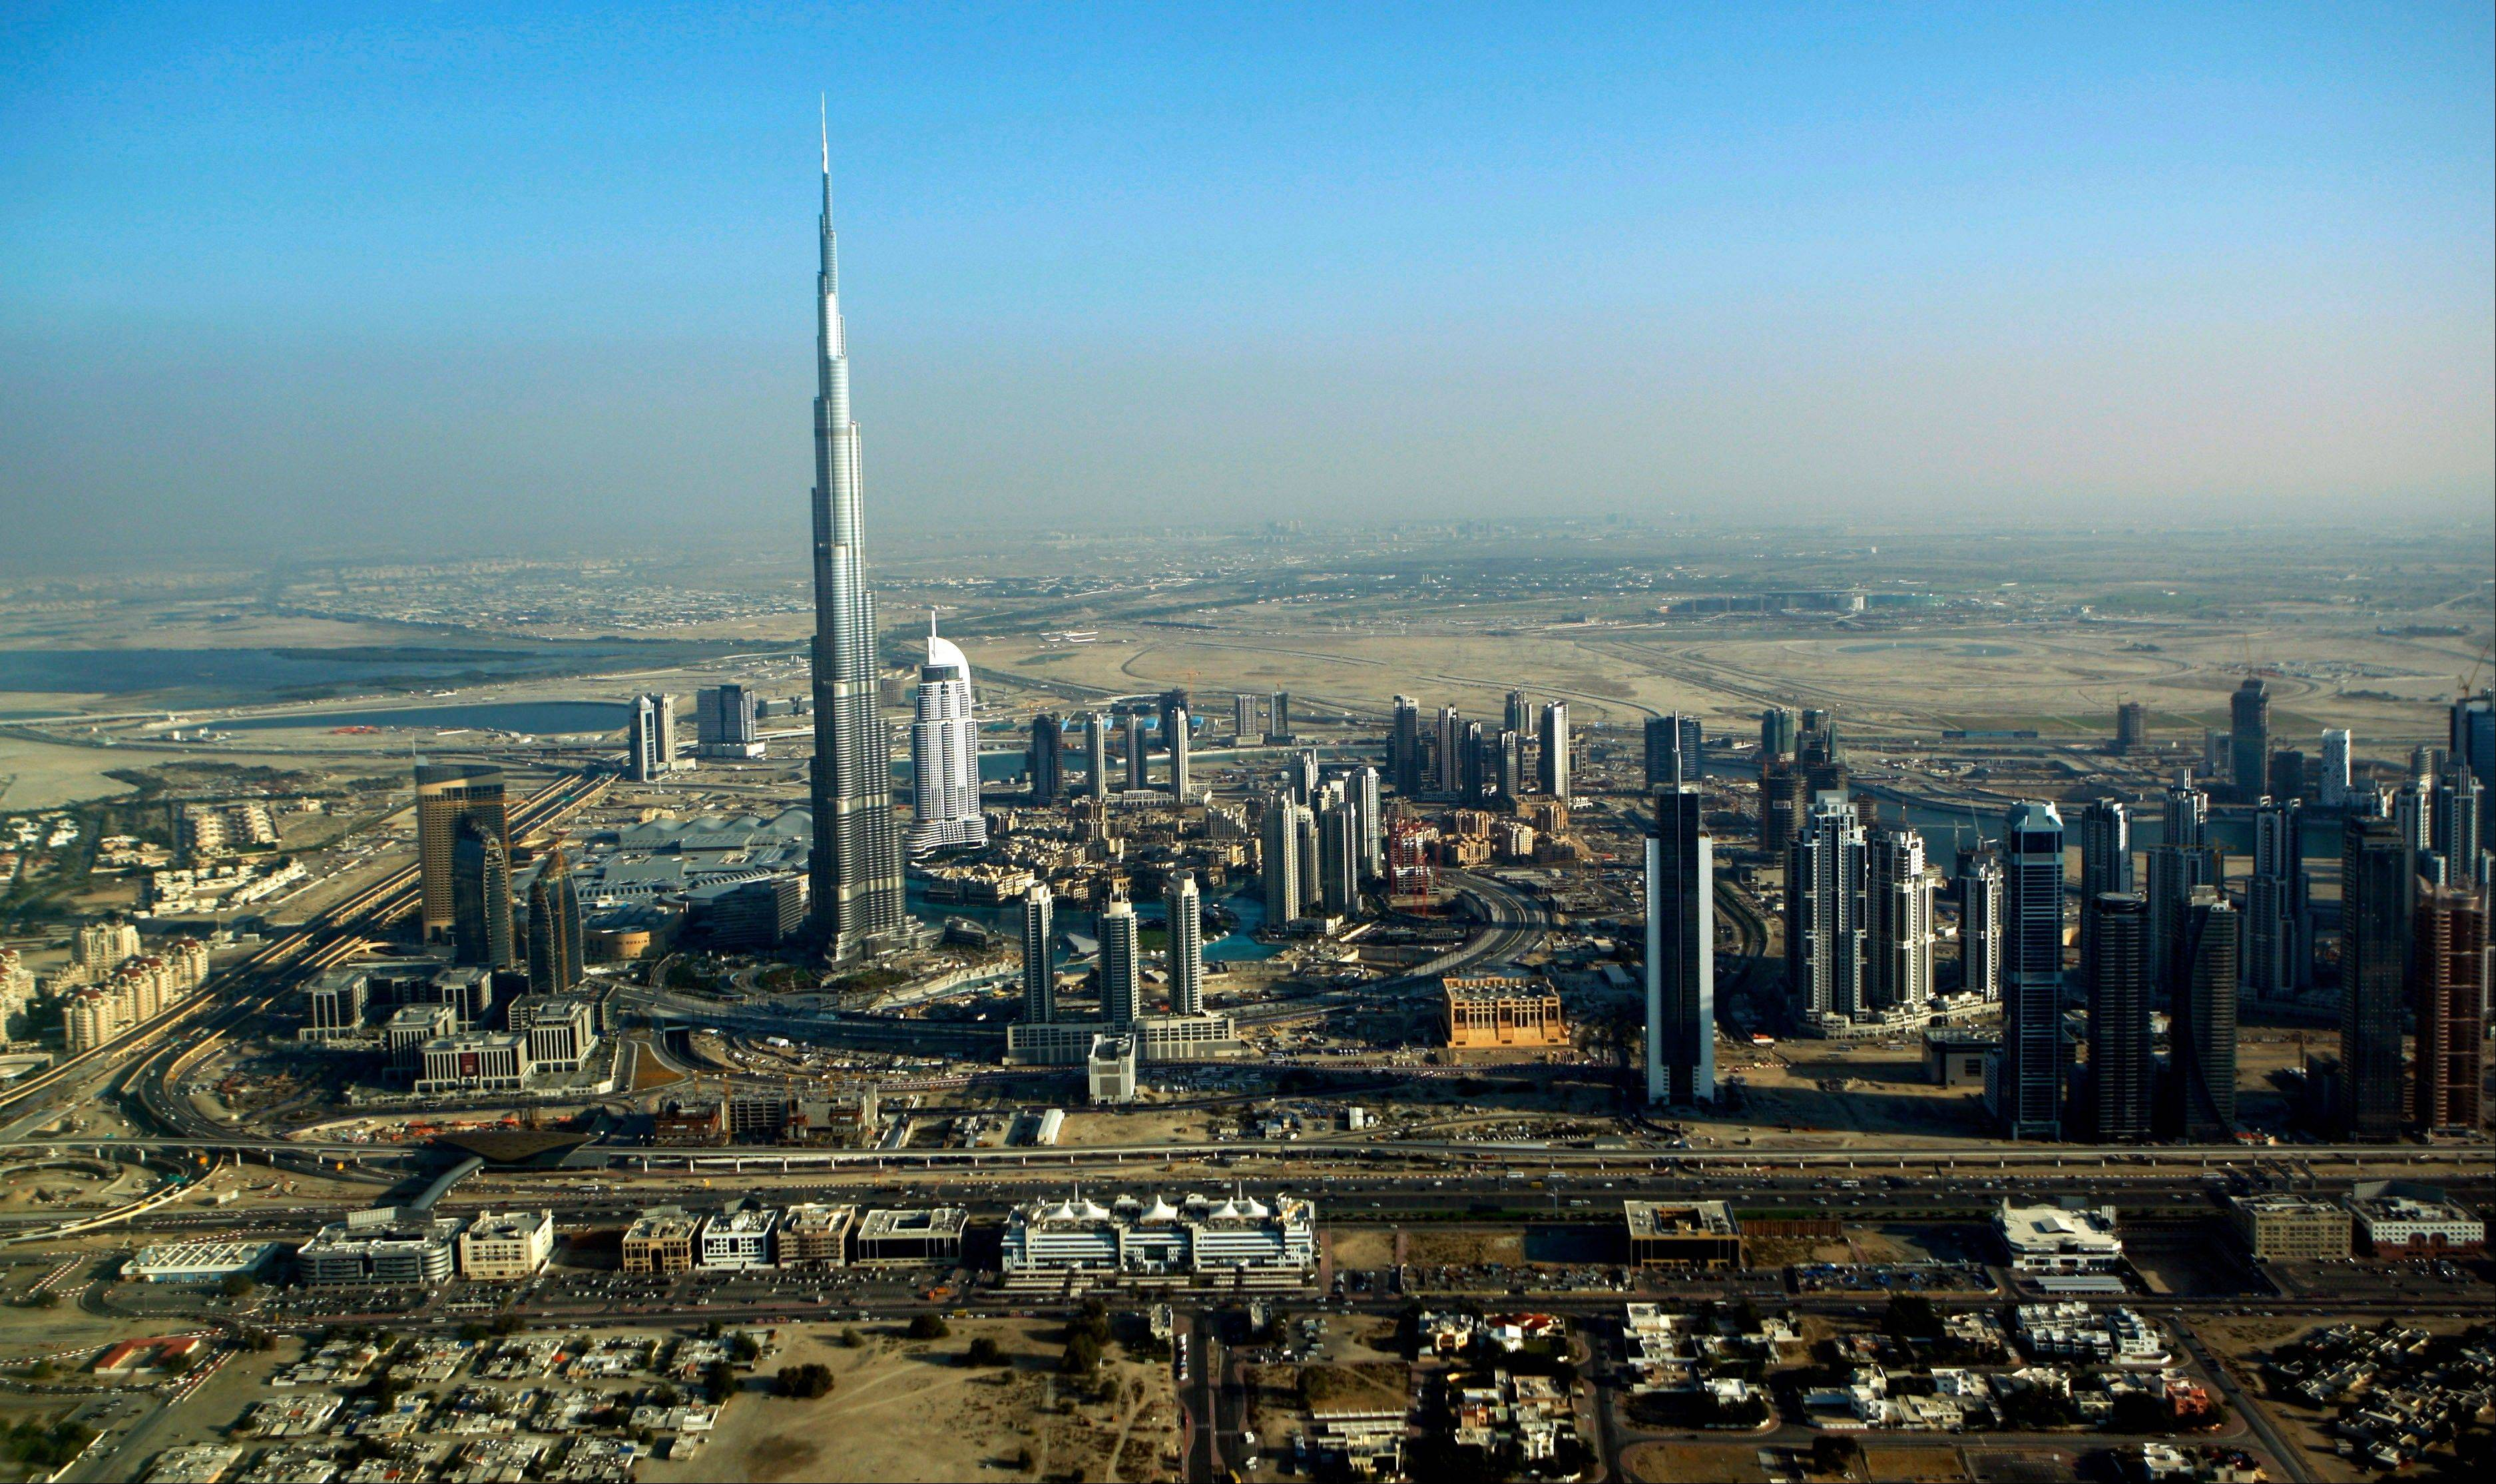 The Burj Dubai, the world's tallest building, in Dubai, United Arab Emirates. It suddenly seems like Dubai is rediscovering its old habits. That means breathless hype is now back in vogue. Construction plans are again peppered with superlatives.